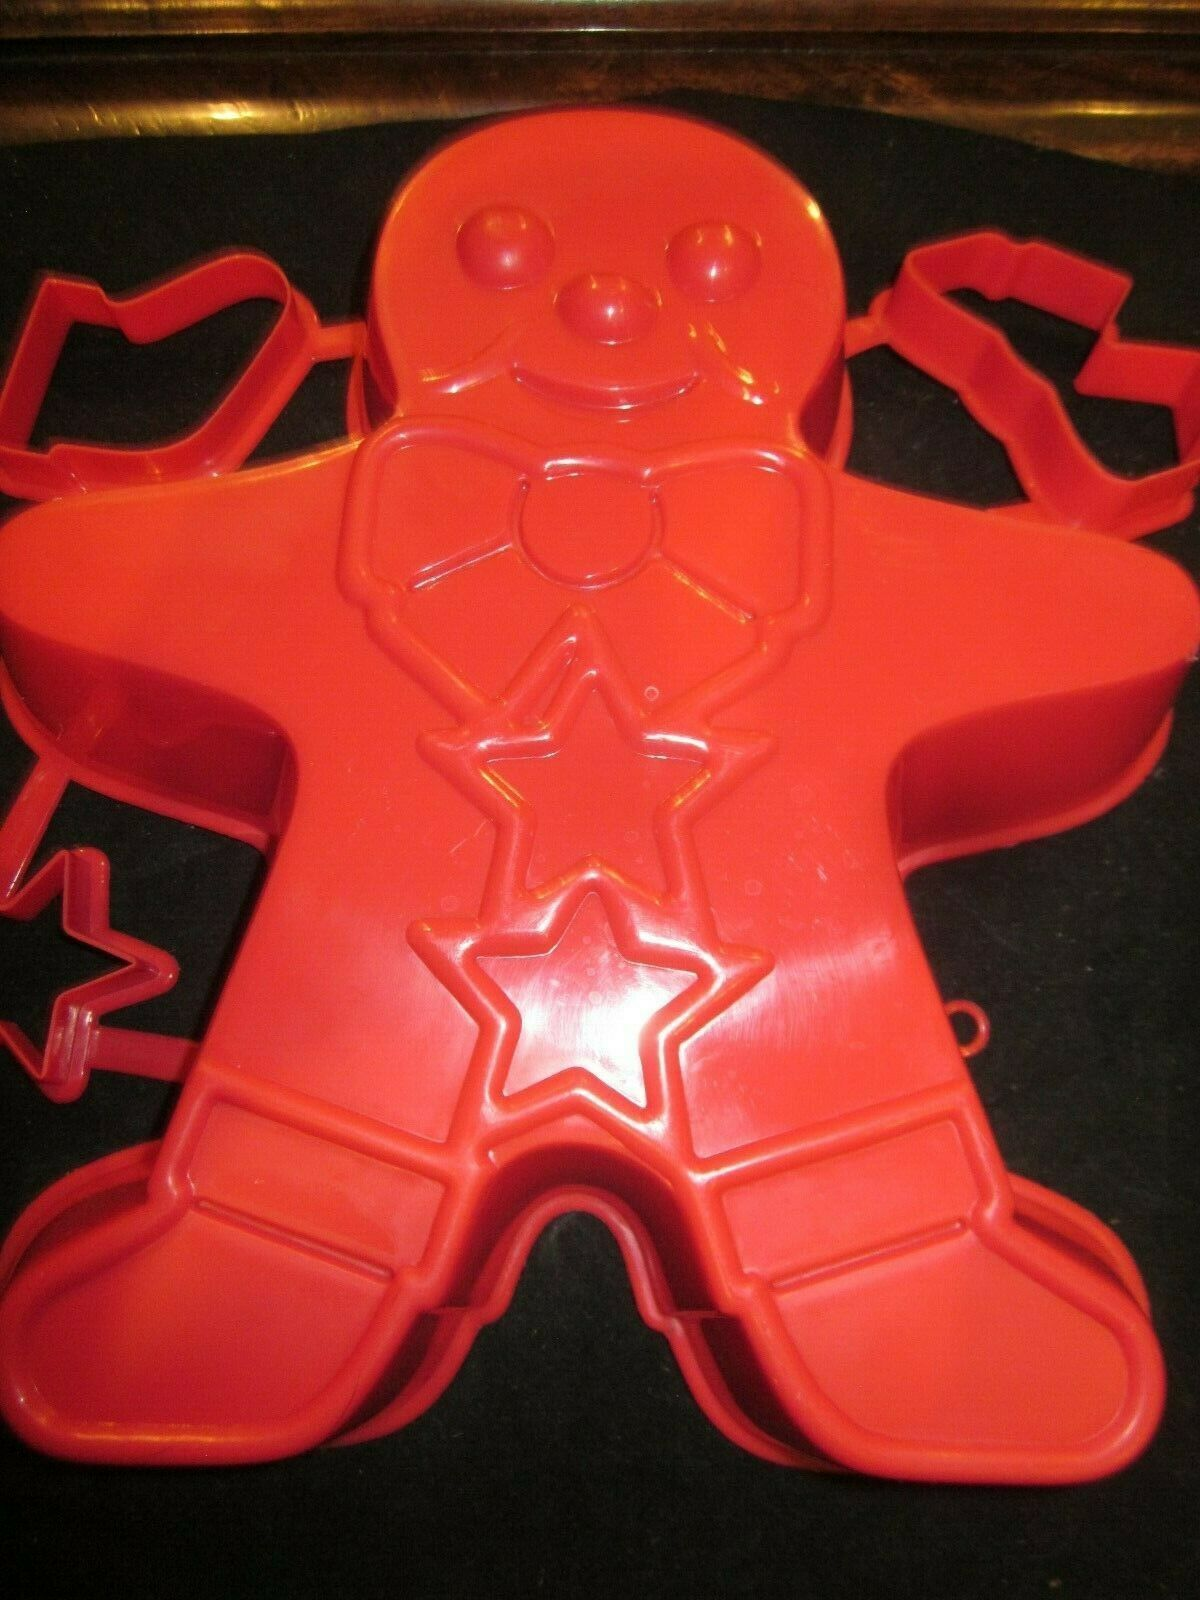 Vintage Large Jll-o Gingerbread Man Mold & Jiggler Cookie Cutters Brand New image 1